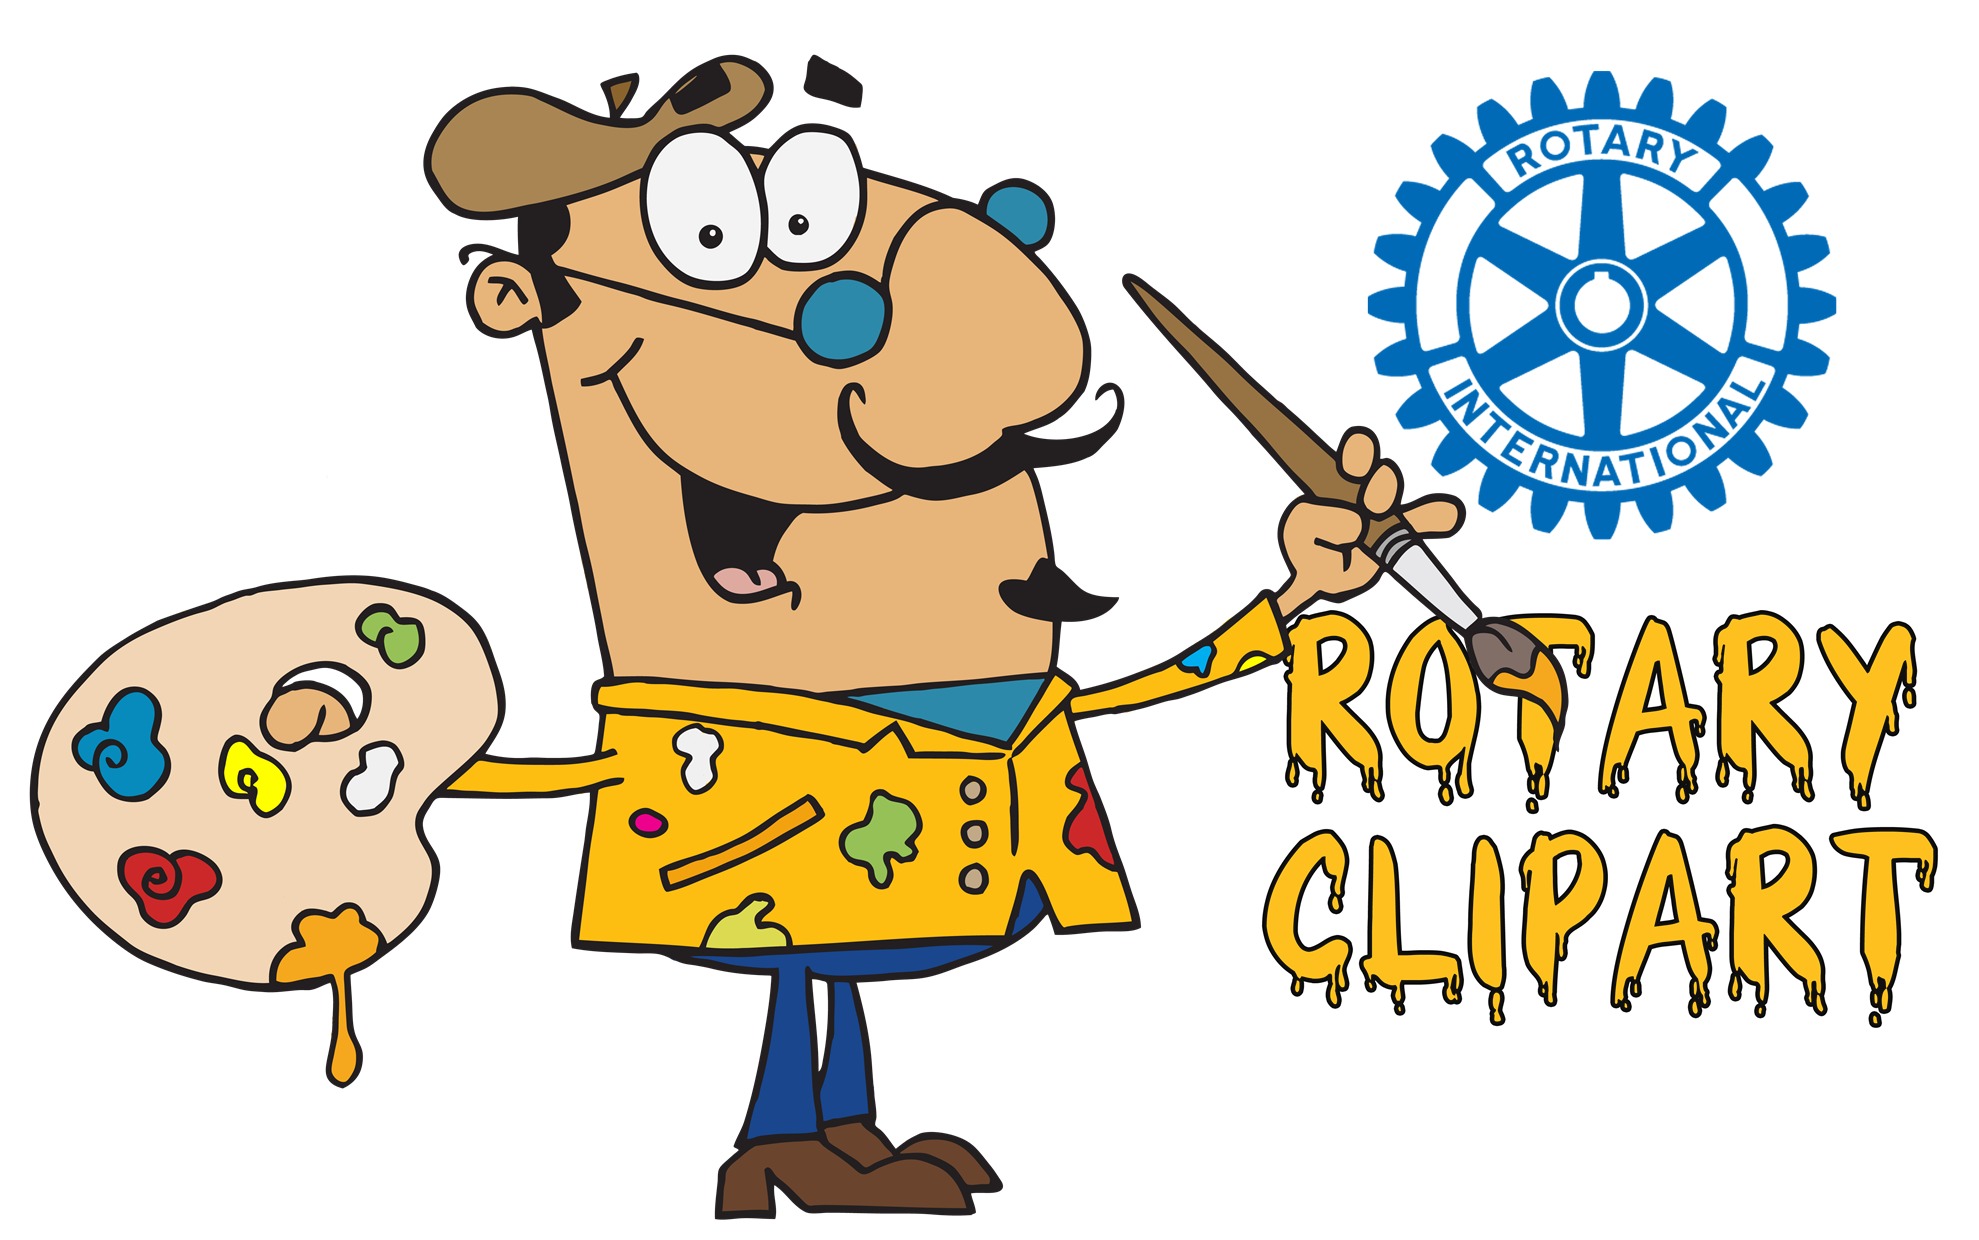 Rotary Related Clipart/Images.